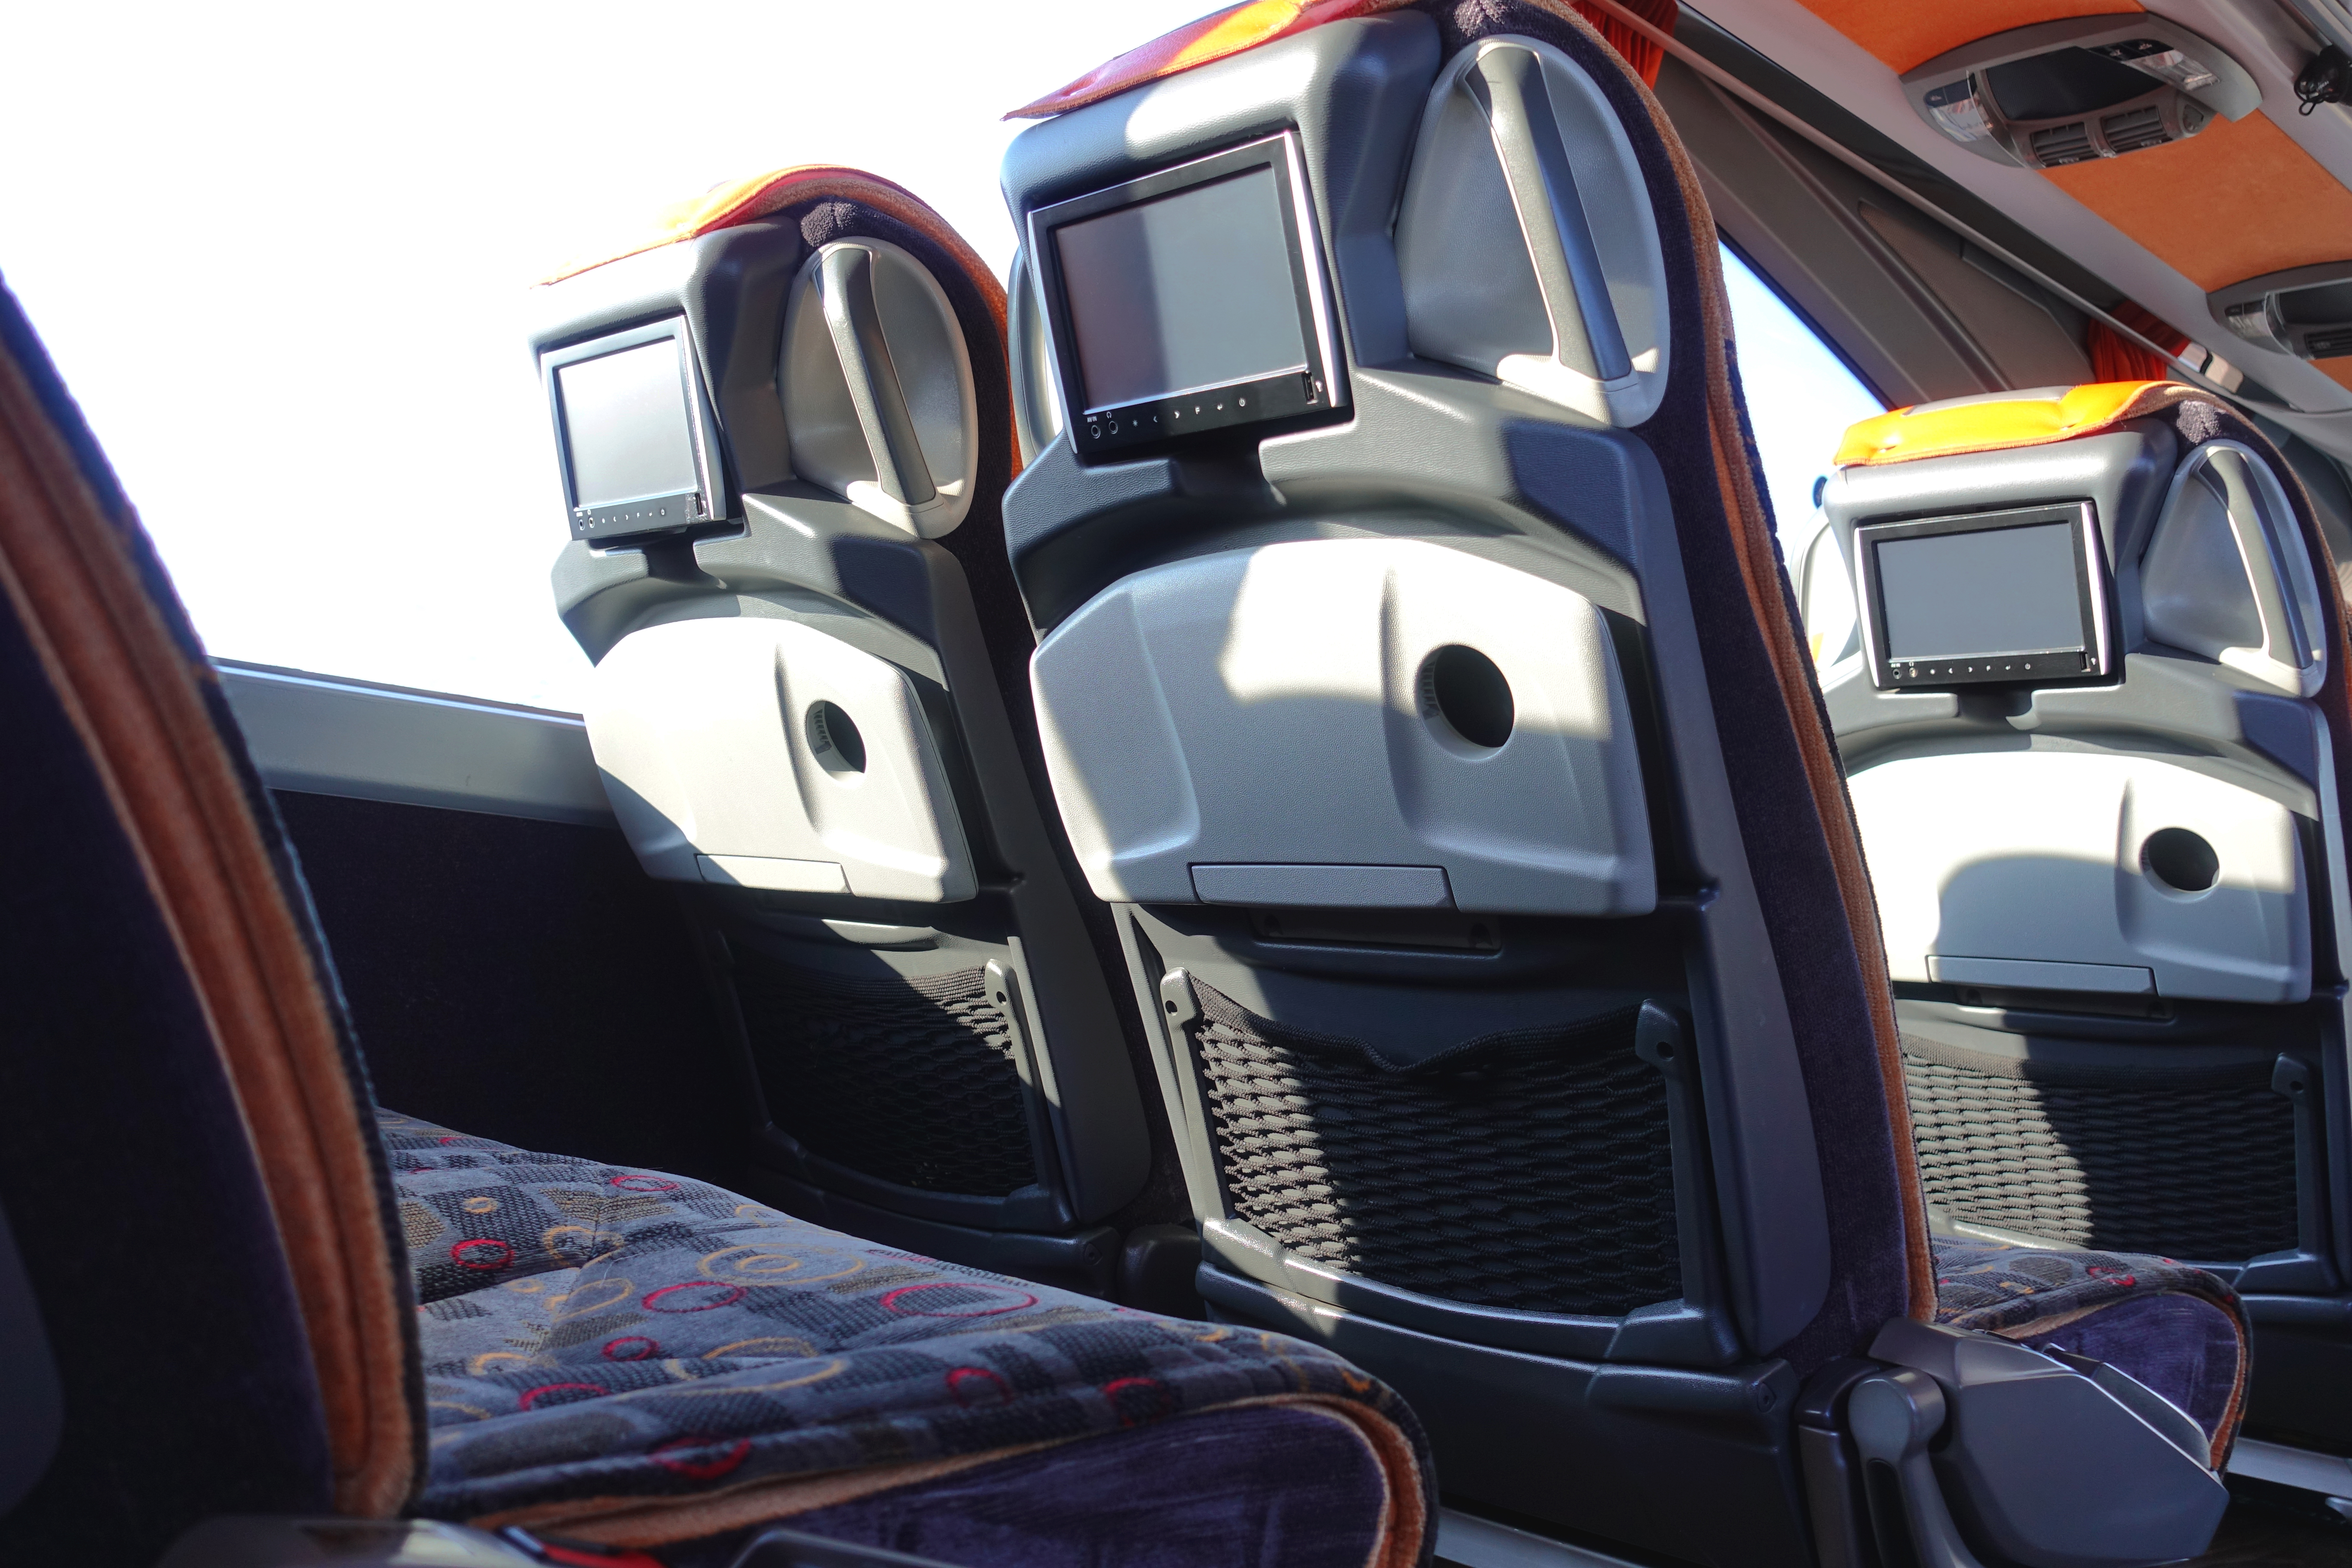 Do charter buses have special amenities